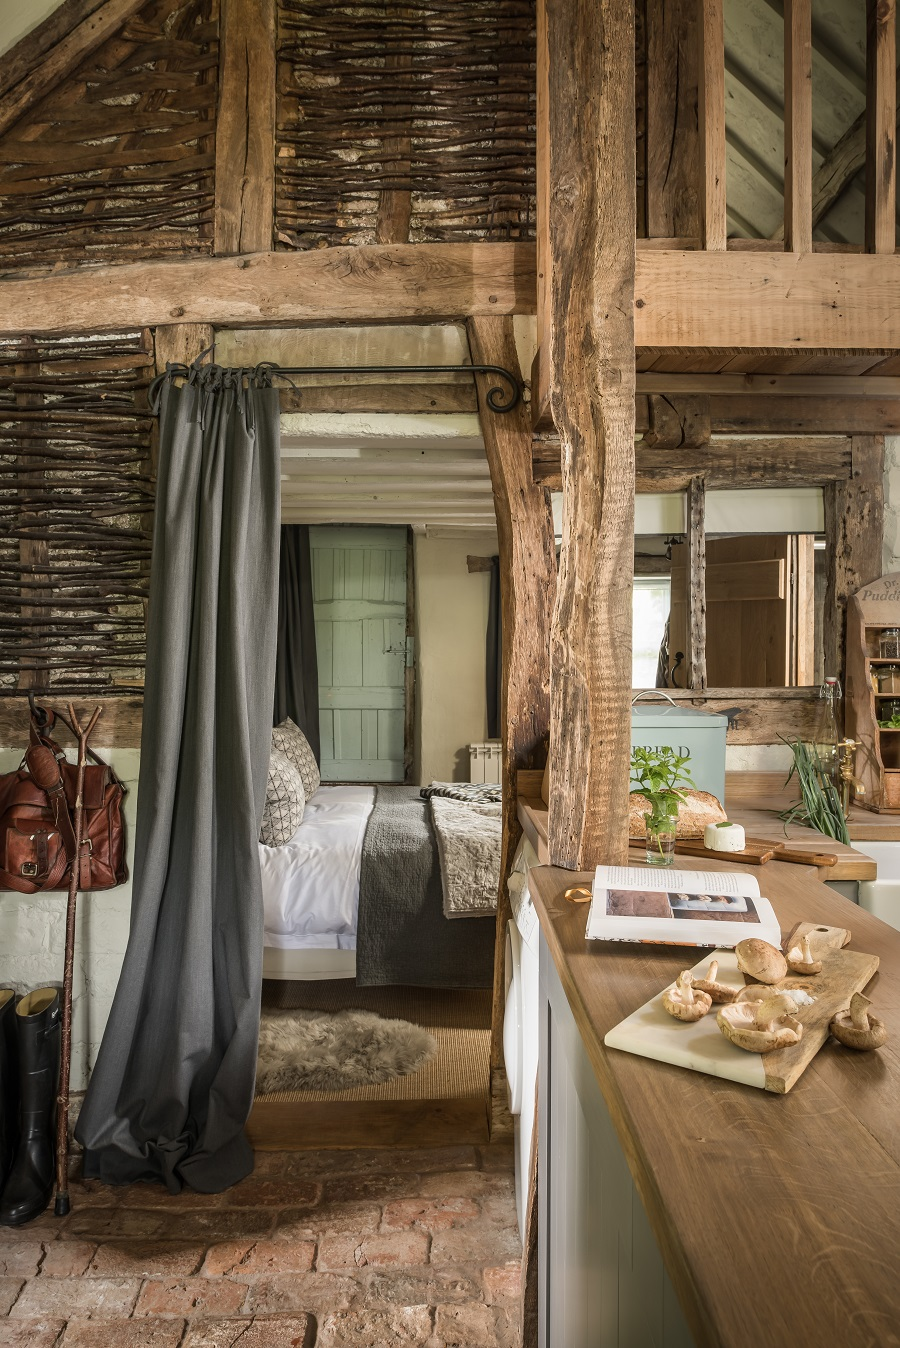 A Barn-Style Holiday Cottage Oozing With Rustic Charm